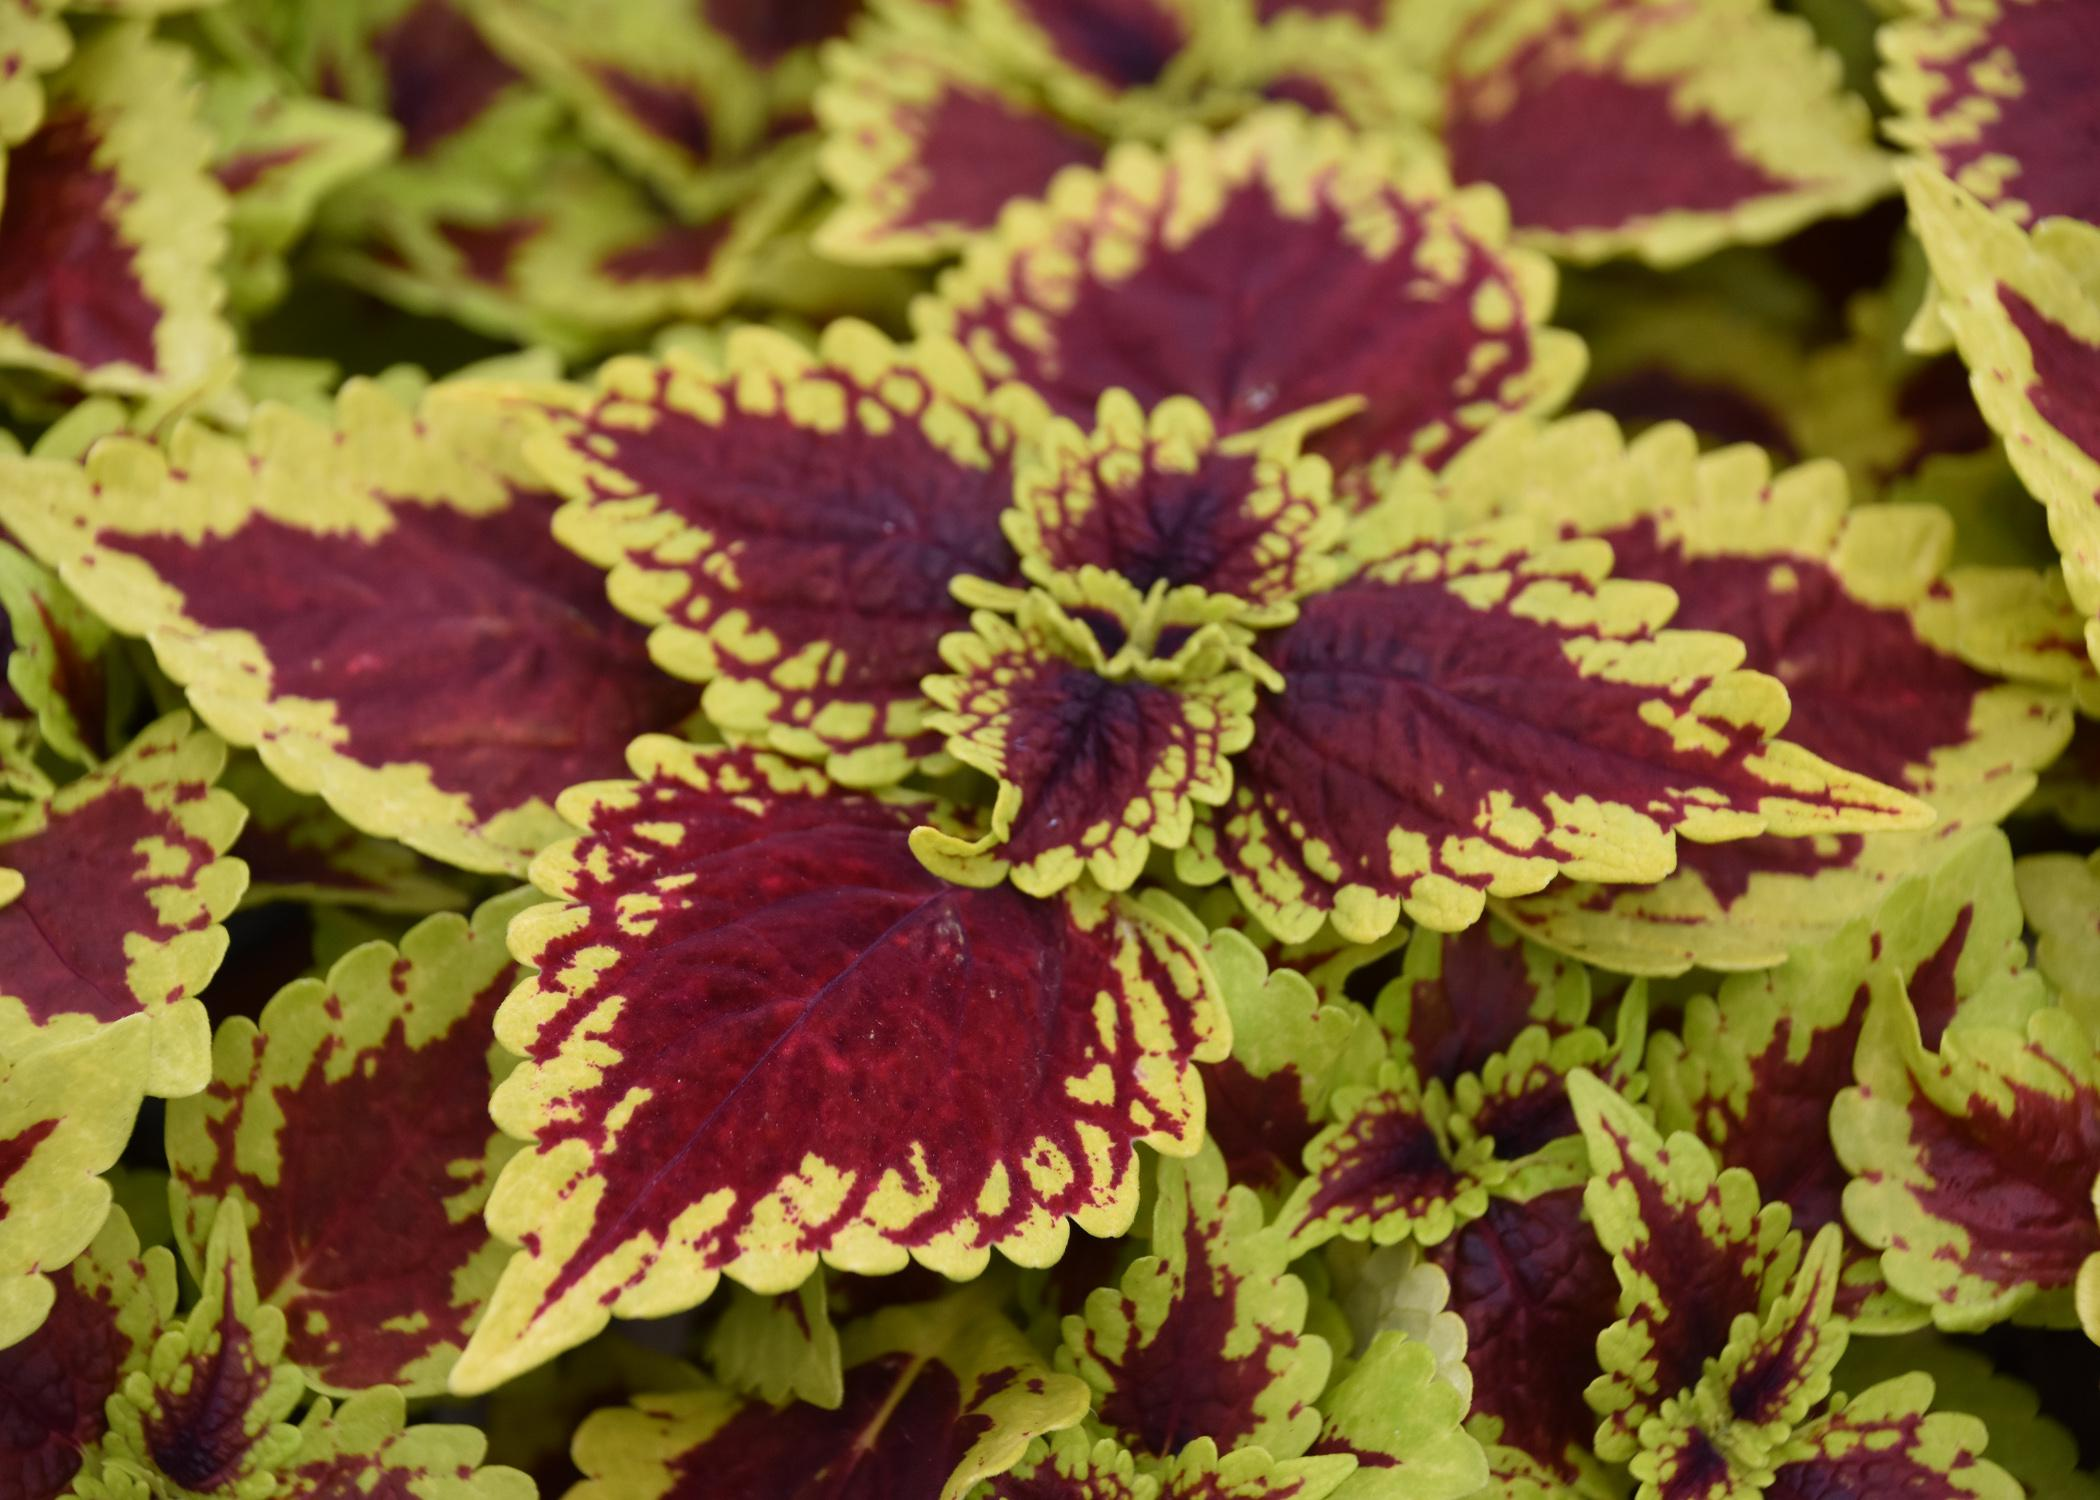 Lime green, ruffled leaves have reddish centers.